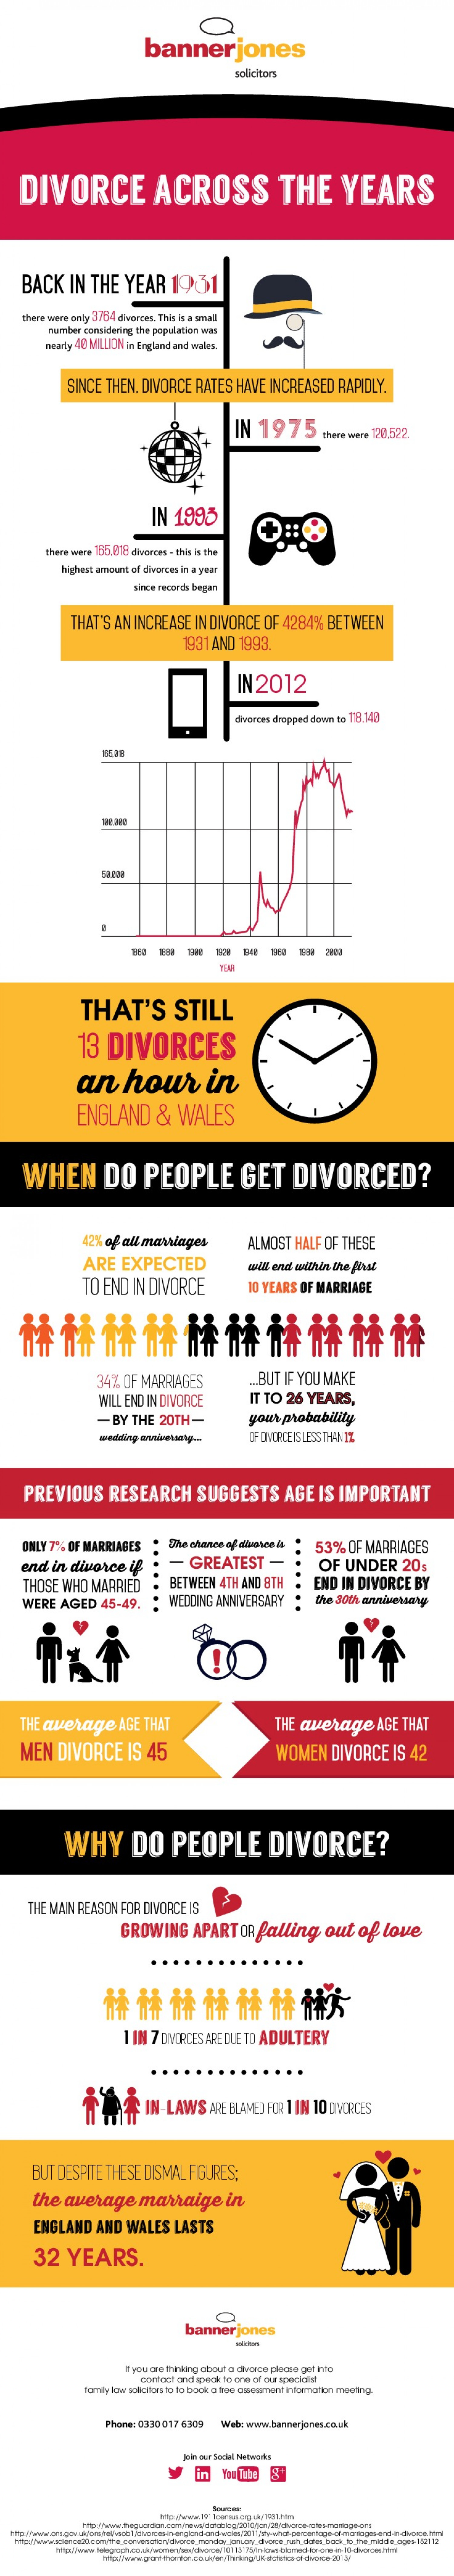 Divorce Across the Years Infographic